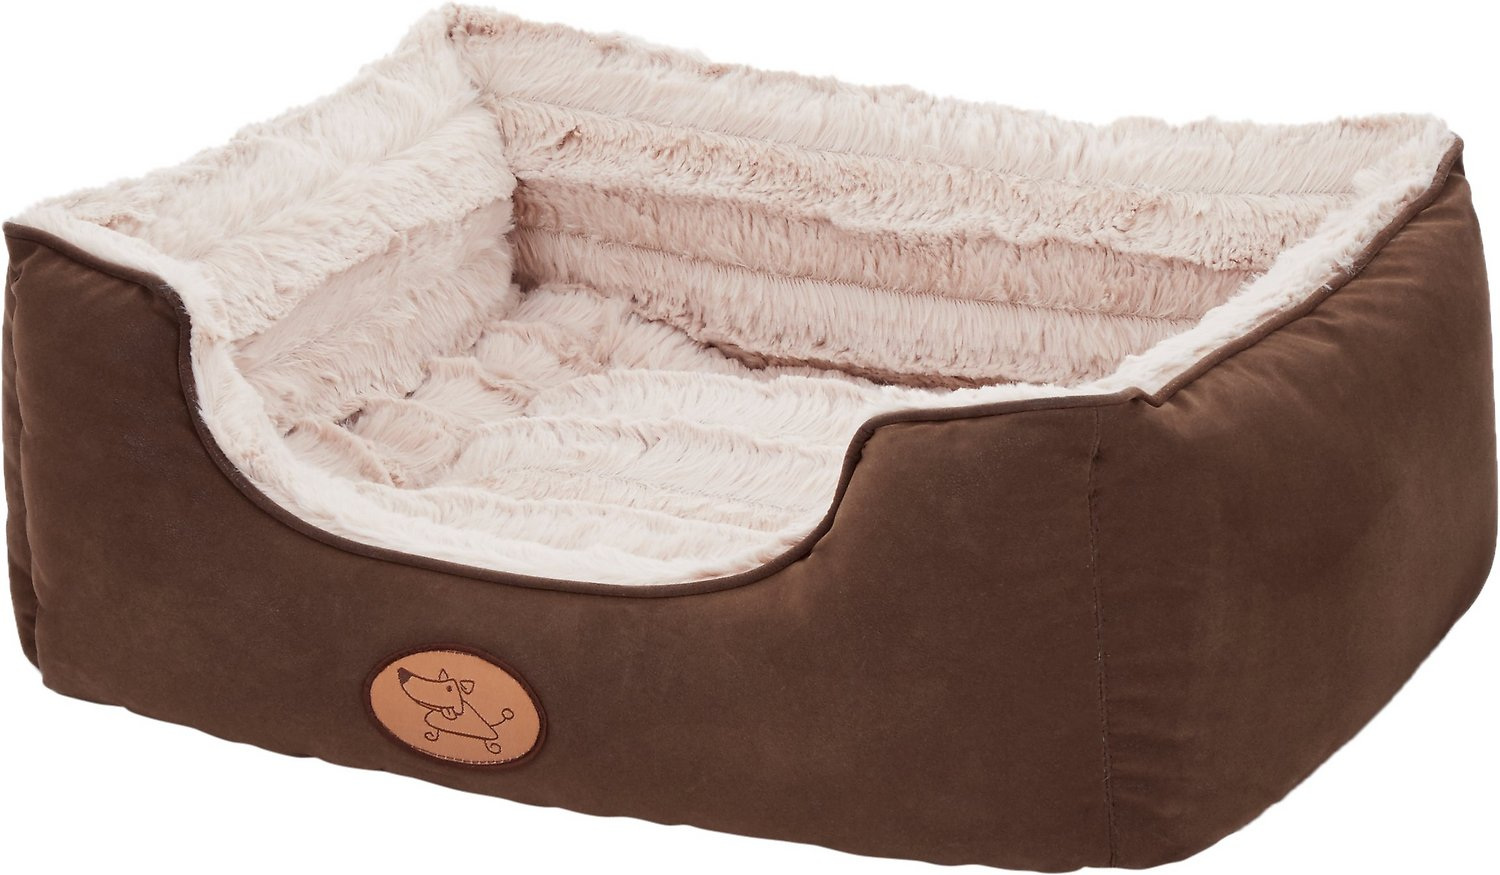 Best Pet Supplies Faux Leather Square Pet Bed, Small